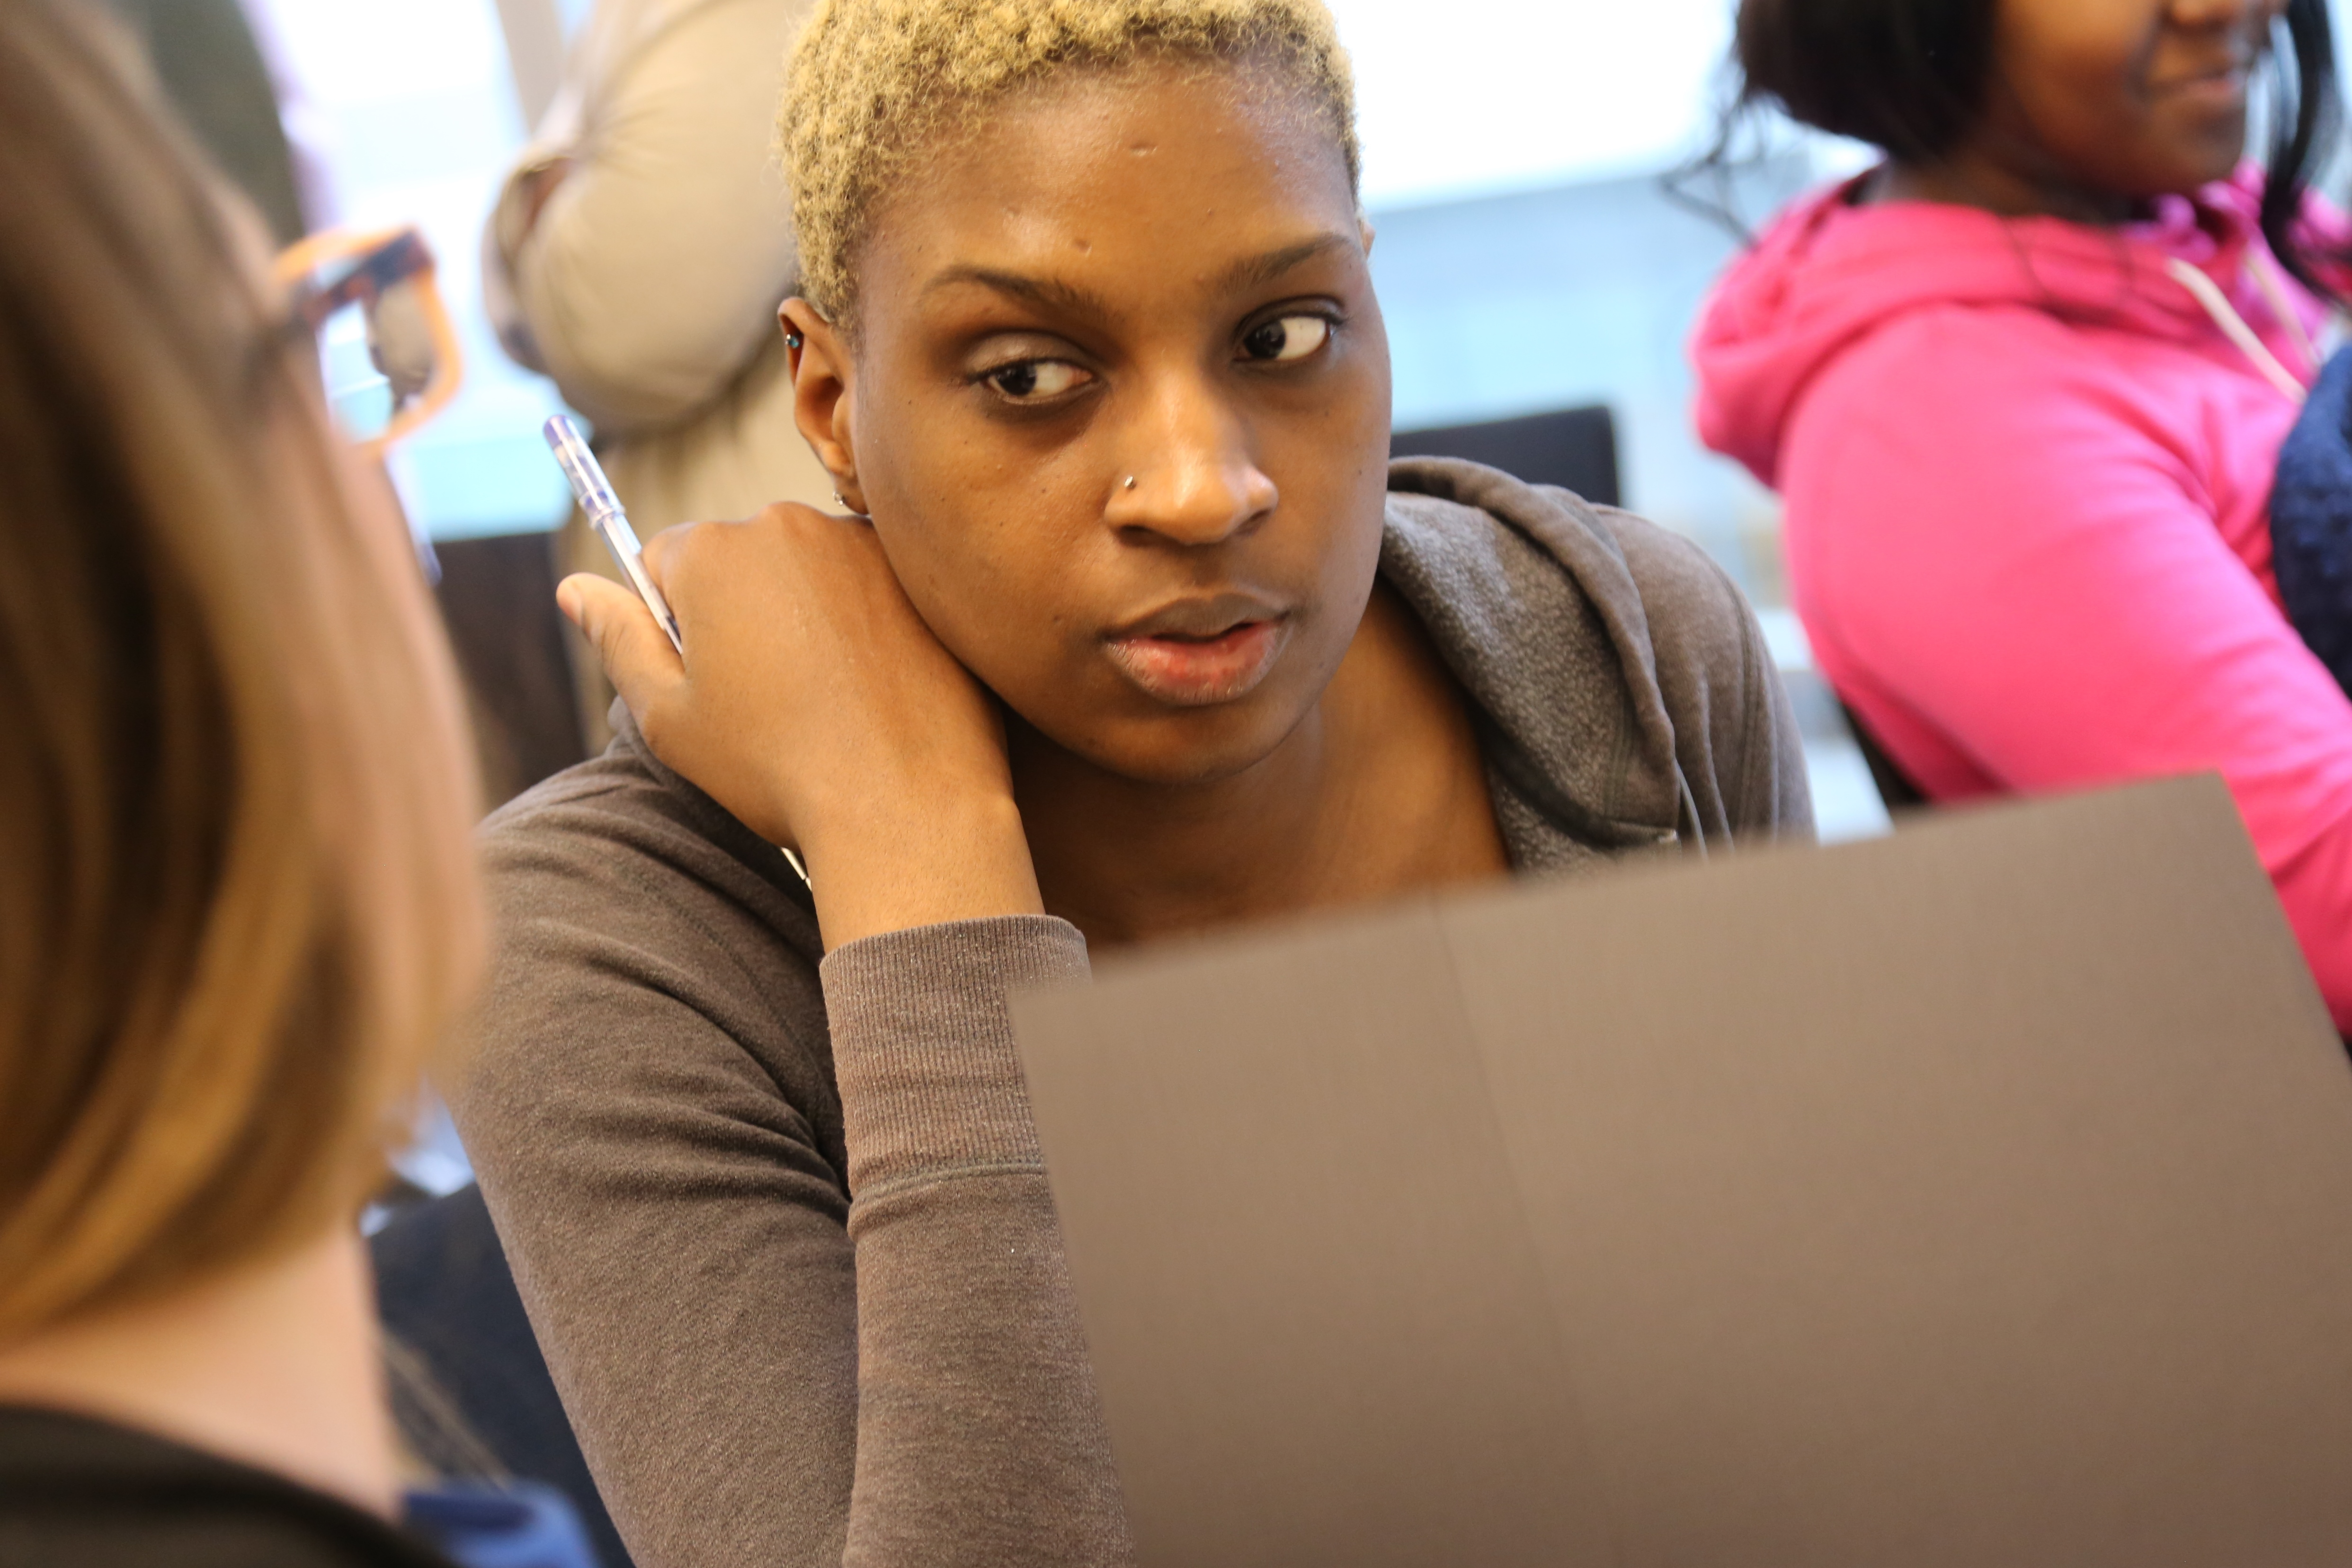 Jasmine Sealy-Norvin receives tips on resumé writing from a volunteer during Bridges to Moms' recent Career Day event.